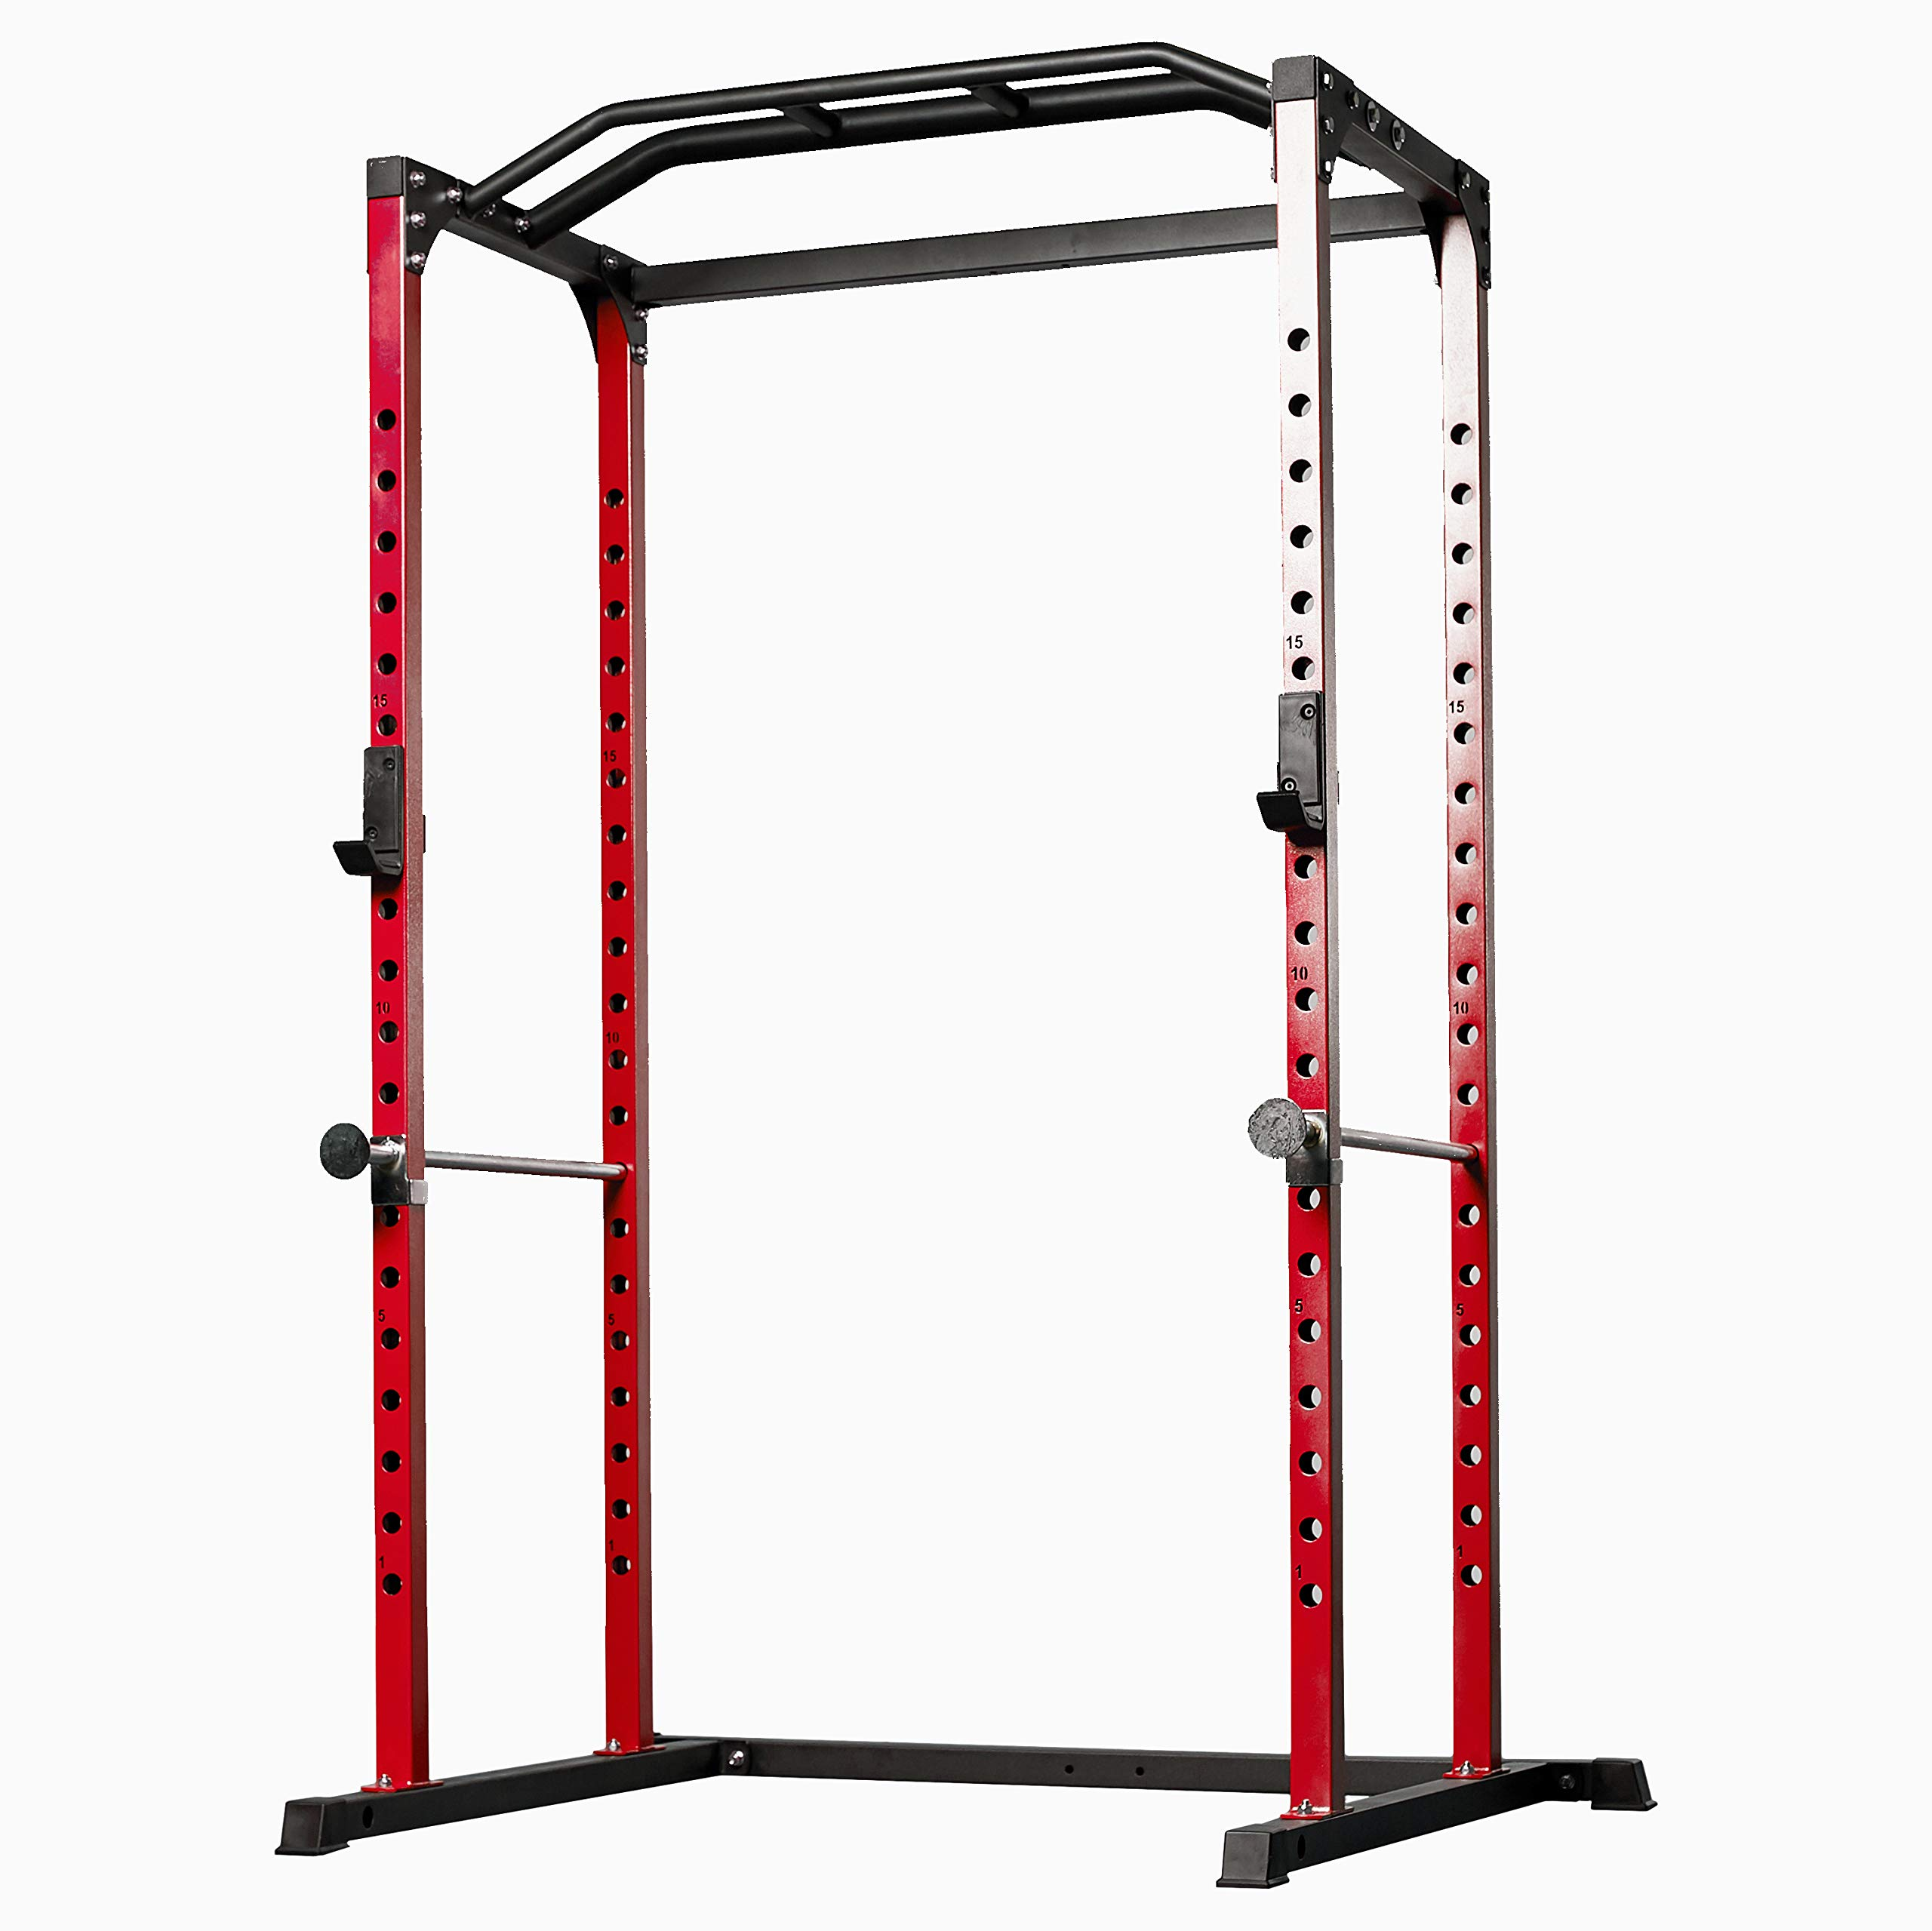 Rep PR-1100 Power Rack - 1,000 lbs Rated Lifting Cage for Weight Training (Red Power Rack, No Bench)